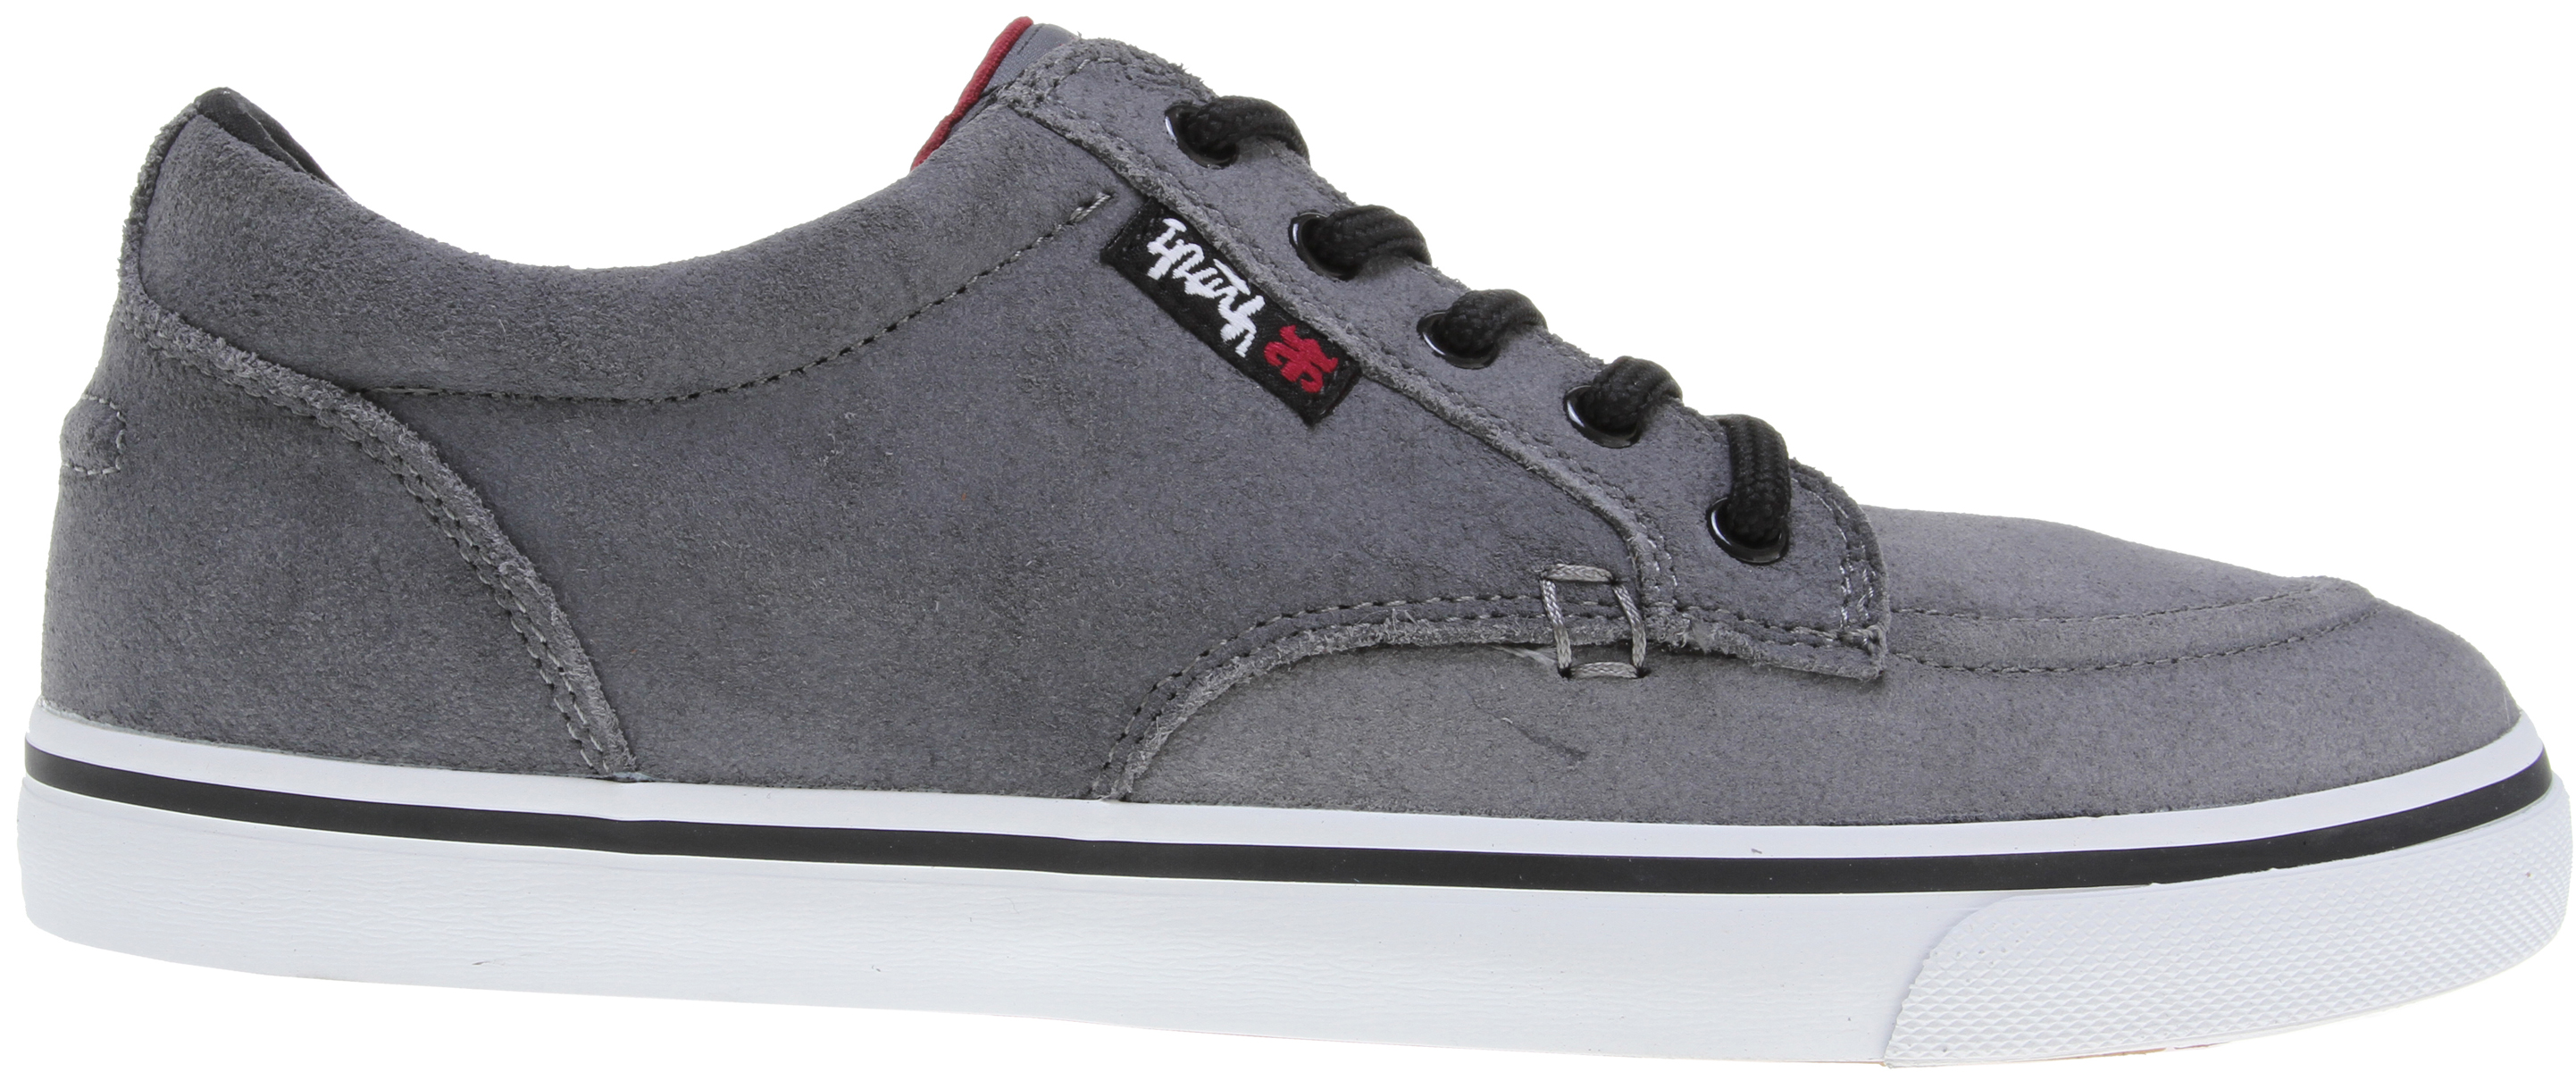 Skateboard The Artisan S is an evolution of the original Artisan, a workboot inspired skate model. This new version features a slimmer overall look with a low profile vulcanized outsole.Key Features of the Ipath Artisan S Shoes: Sticky-icky rubber Dual-density skate insole Durable suede and waxed canvas Leather laces - $48.95